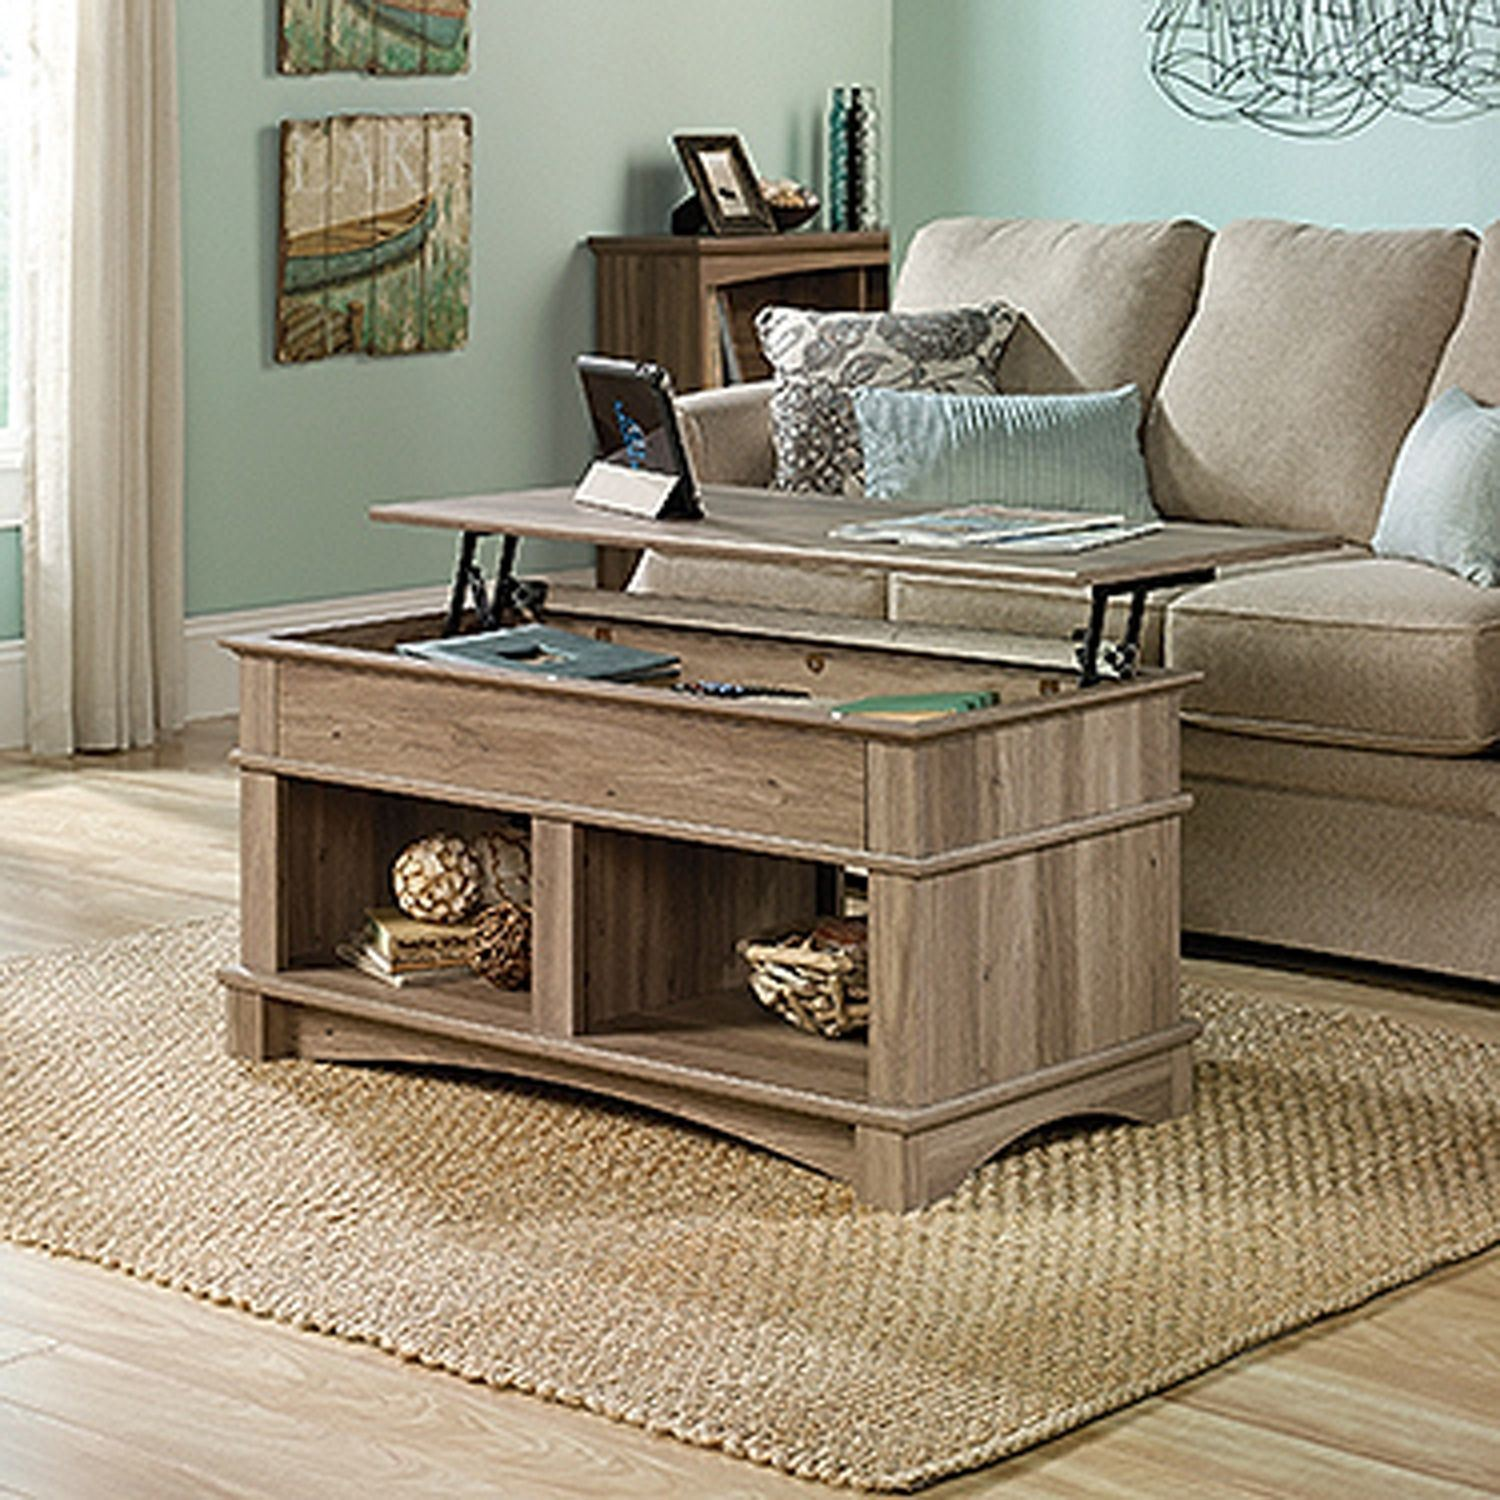 Lift Table Coffee Table: Harbor View Lift-Top Coffee Table Salt Oak * D